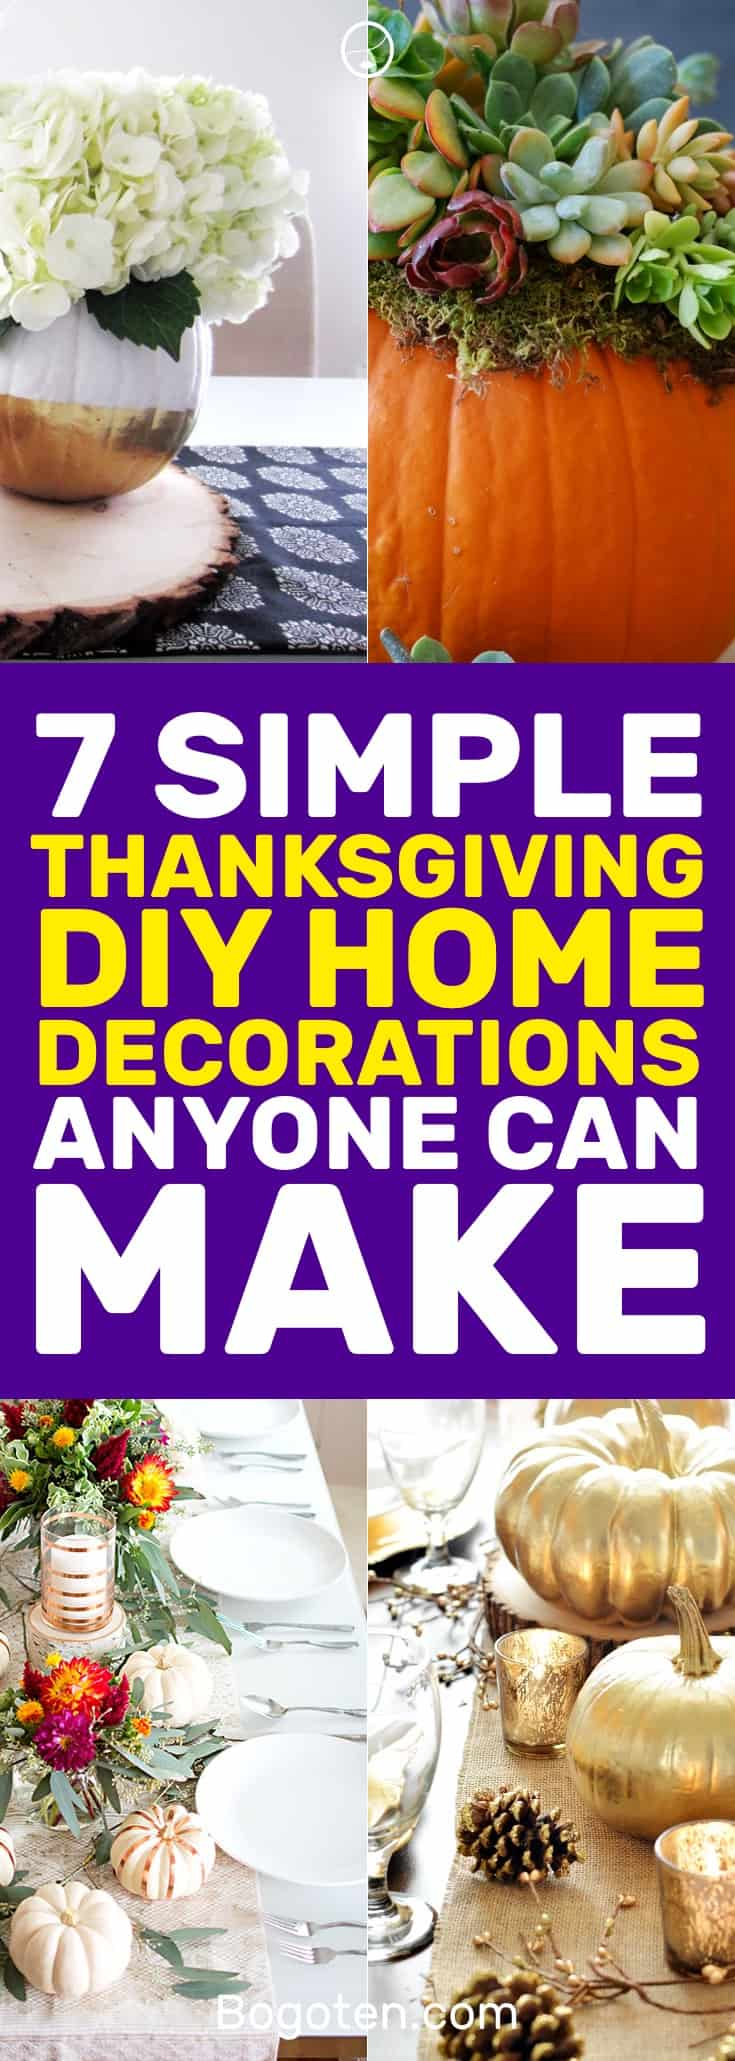 Iu0027ve Found These Awesome DIY Thanksgiving Decorations To Really Give My  Thanksgiving Dinner The